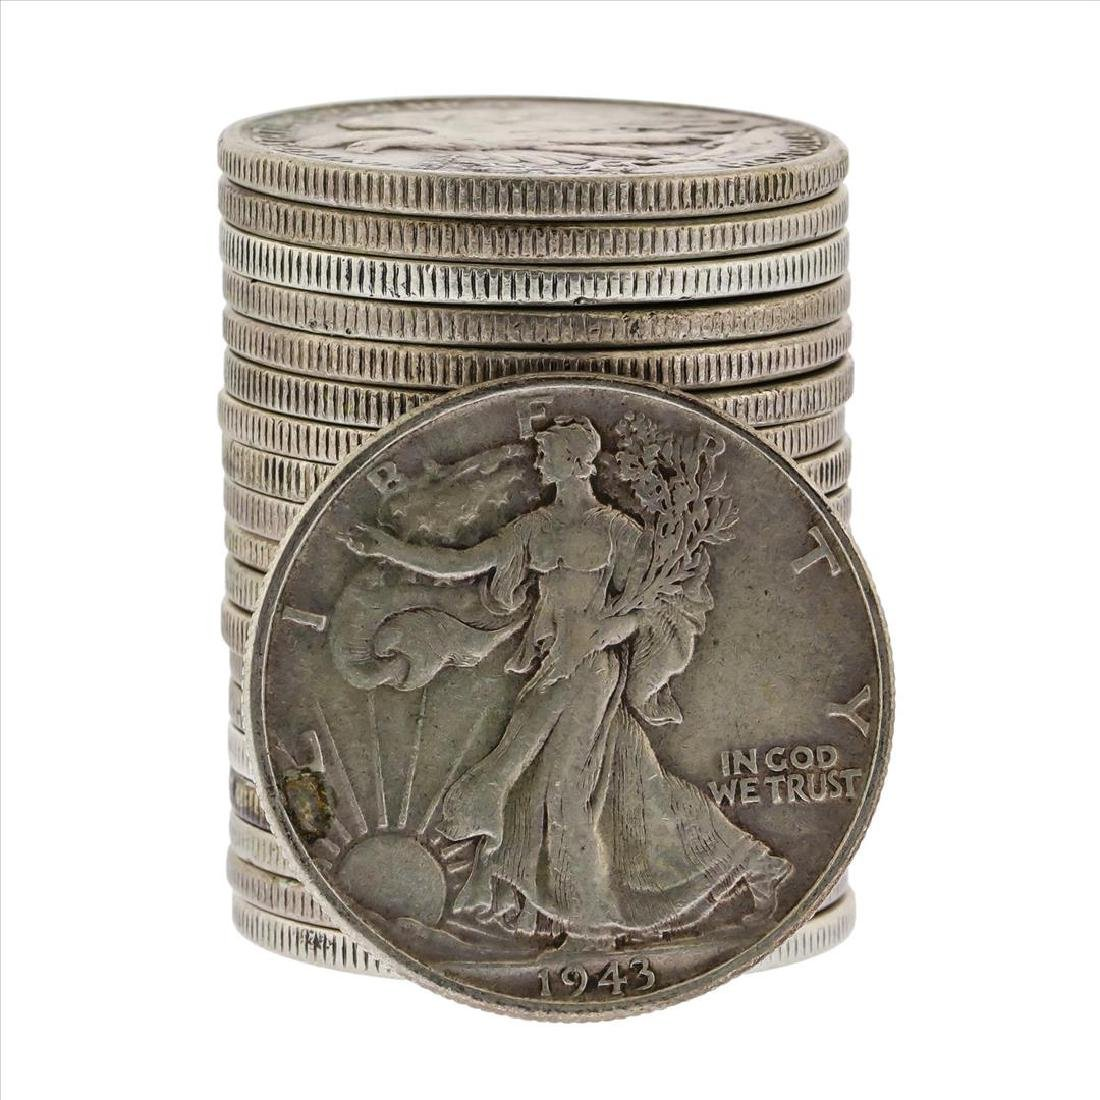 1943 Walking Liberty Half Dollar Coin